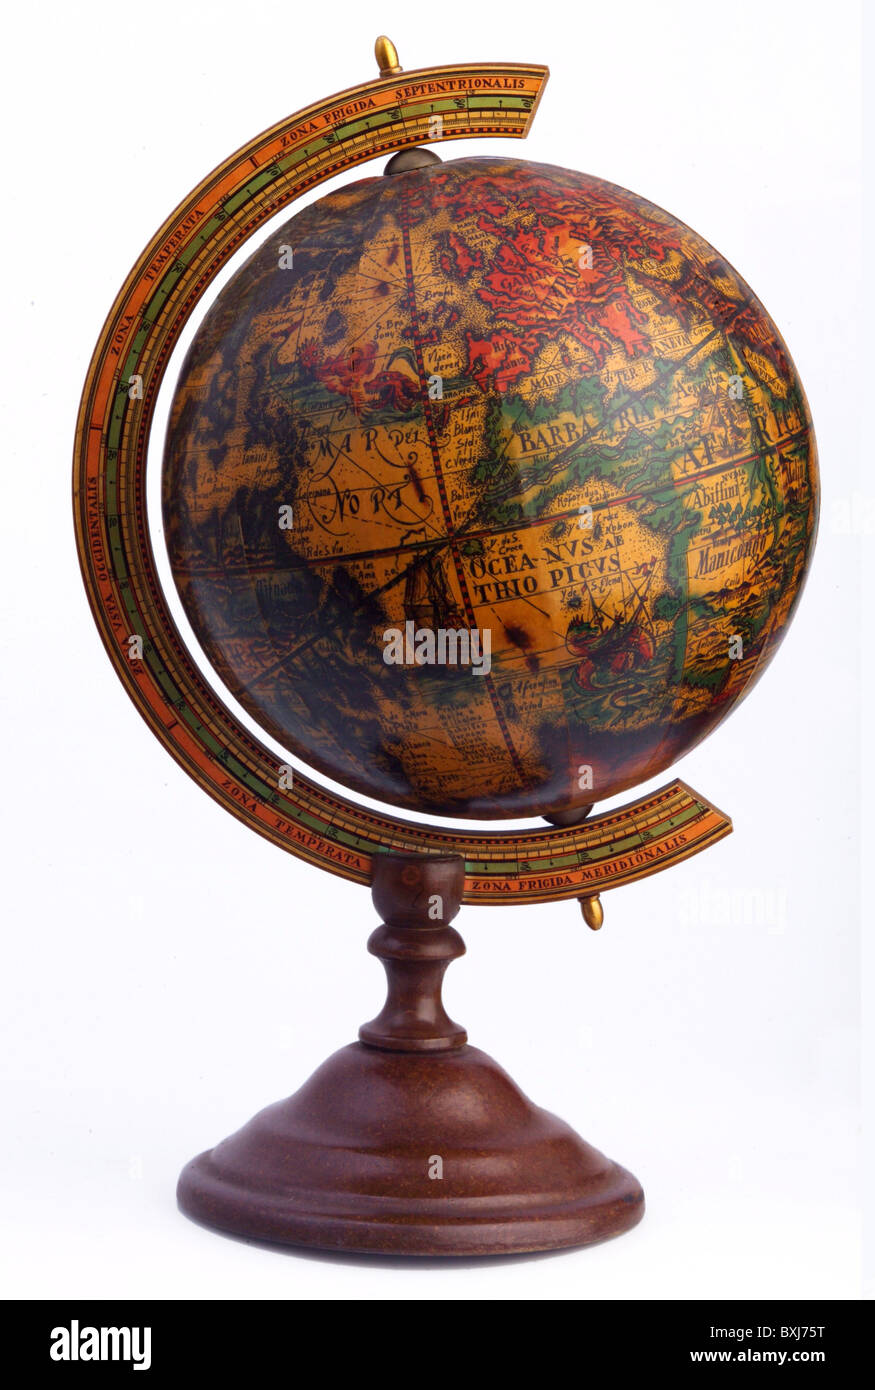 Cartography globes globe replication of an old world map from cartography globes globe replication of an old world map from 16th century germany 1930s historic historical 20th centur gumiabroncs Choice Image